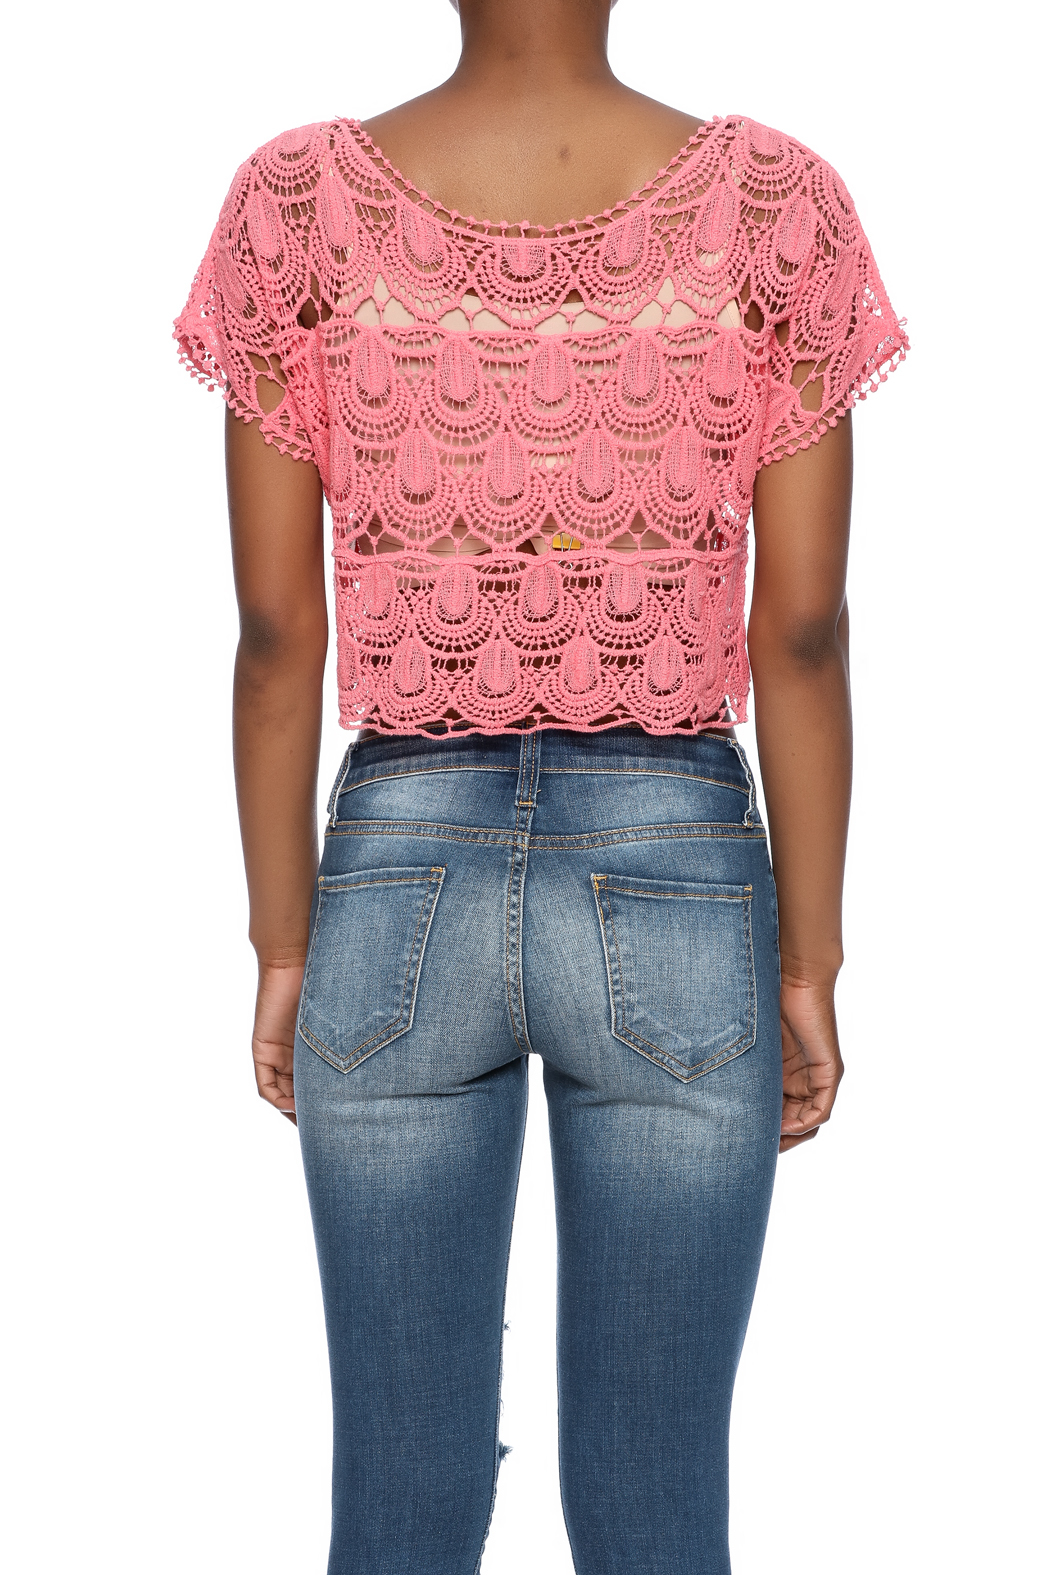 C Mode Coral Crocheted Crop Top - Back Cropped Image